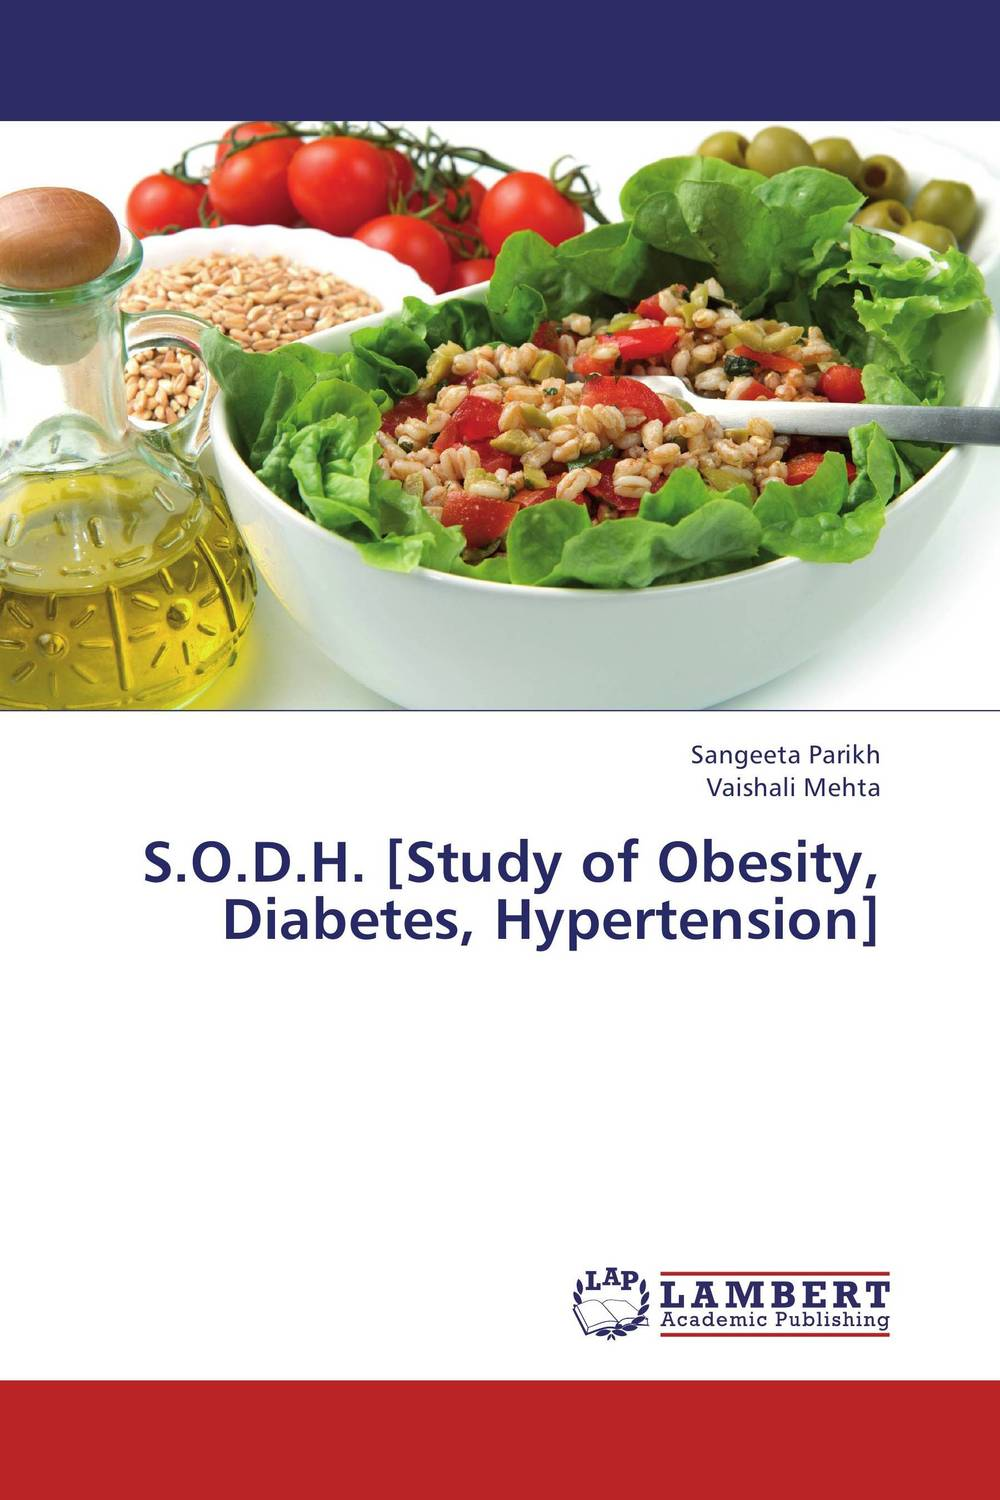 S.O.D.H. [Study of Obesity, Diabetes, Hypertension] cyrus karuga and herbert oburra risk factors for early complications of tracheostomies at knh